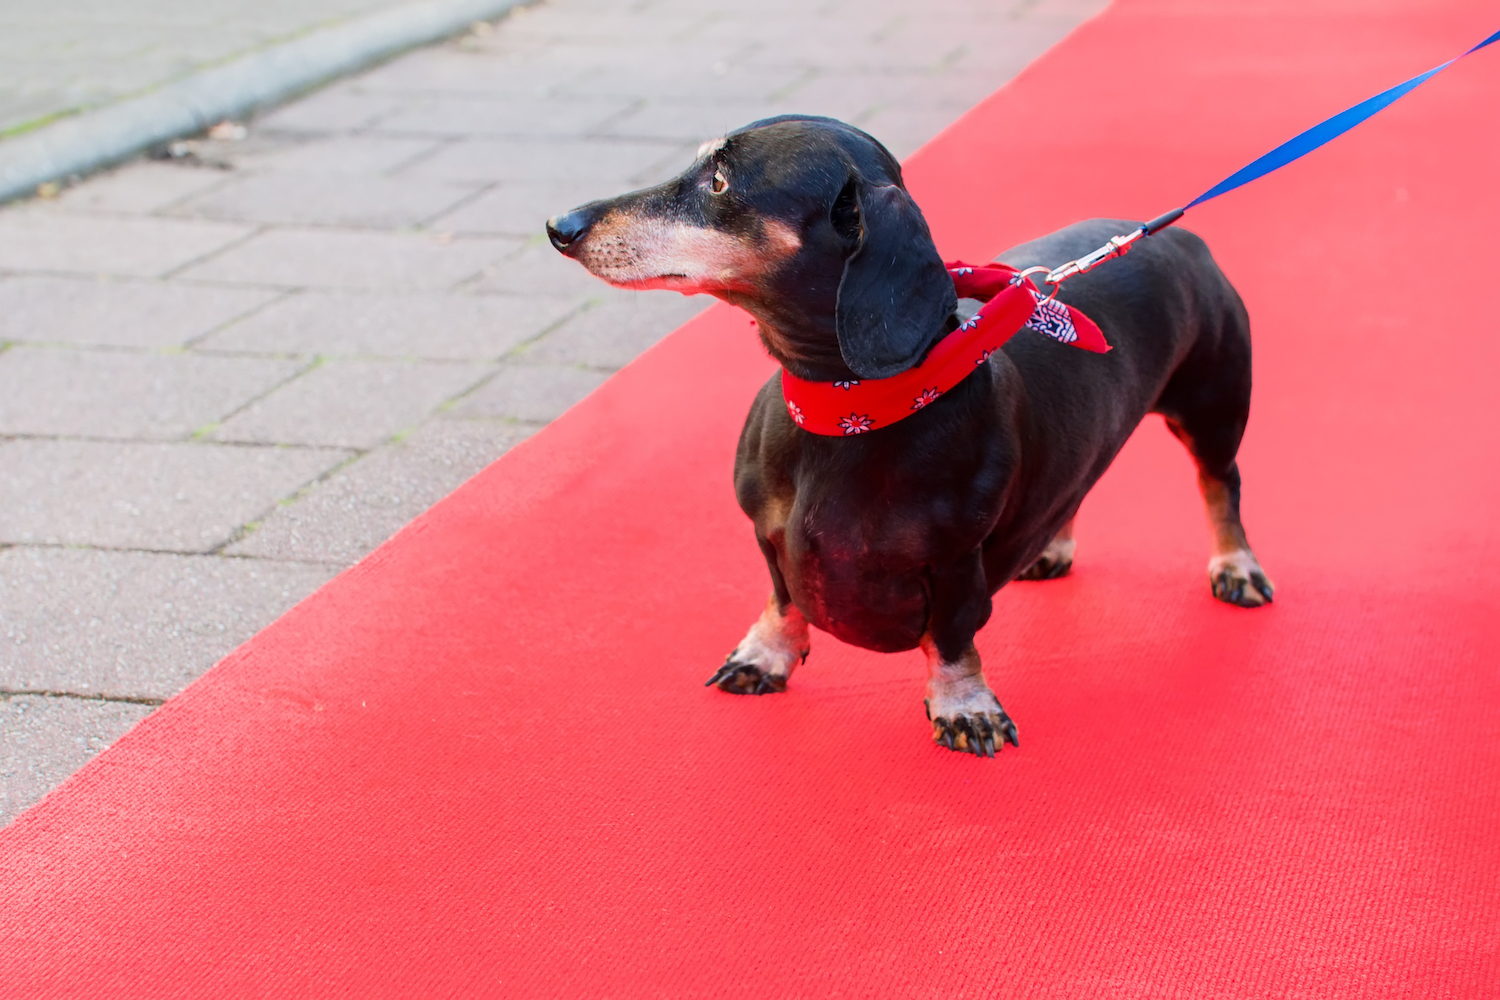 Canva - Dachshund at Red Carpet